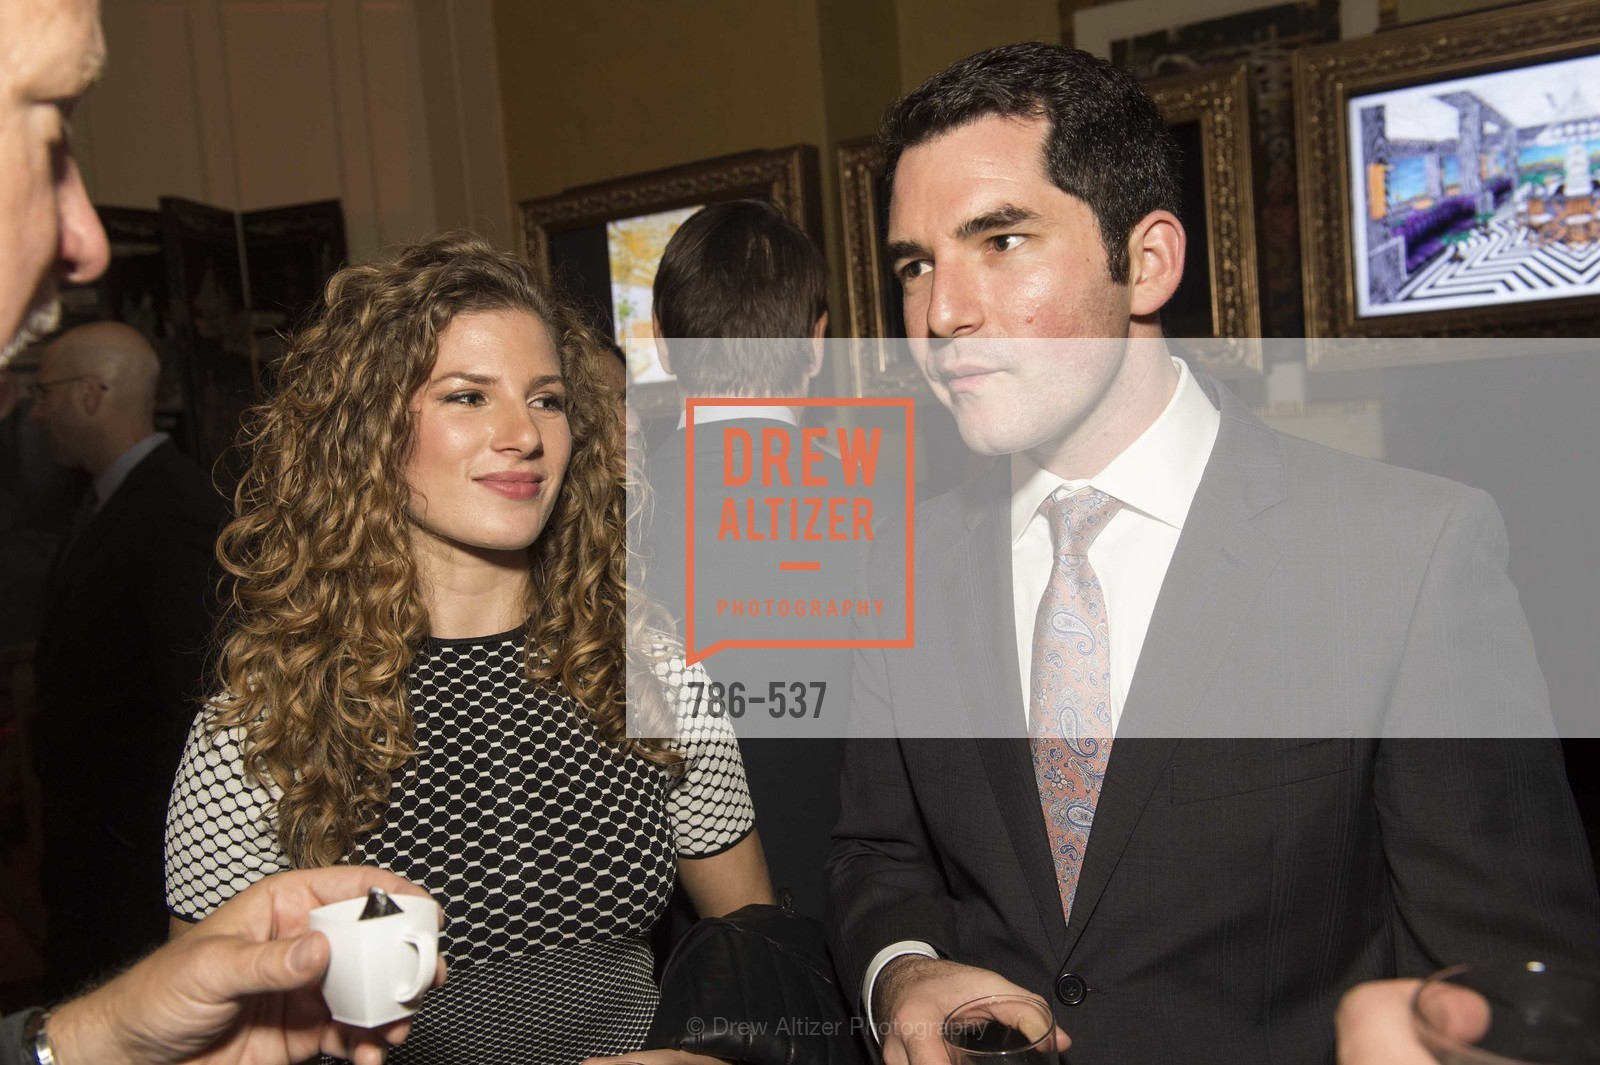 Adriana Volocsky, Sam Aperbach, TOP OF THE MARK'S 75TH Anniversary Party, US, November 7th, 2014,Drew Altizer, Drew Altizer Photography, full-service agency, private events, San Francisco photographer, photographer california